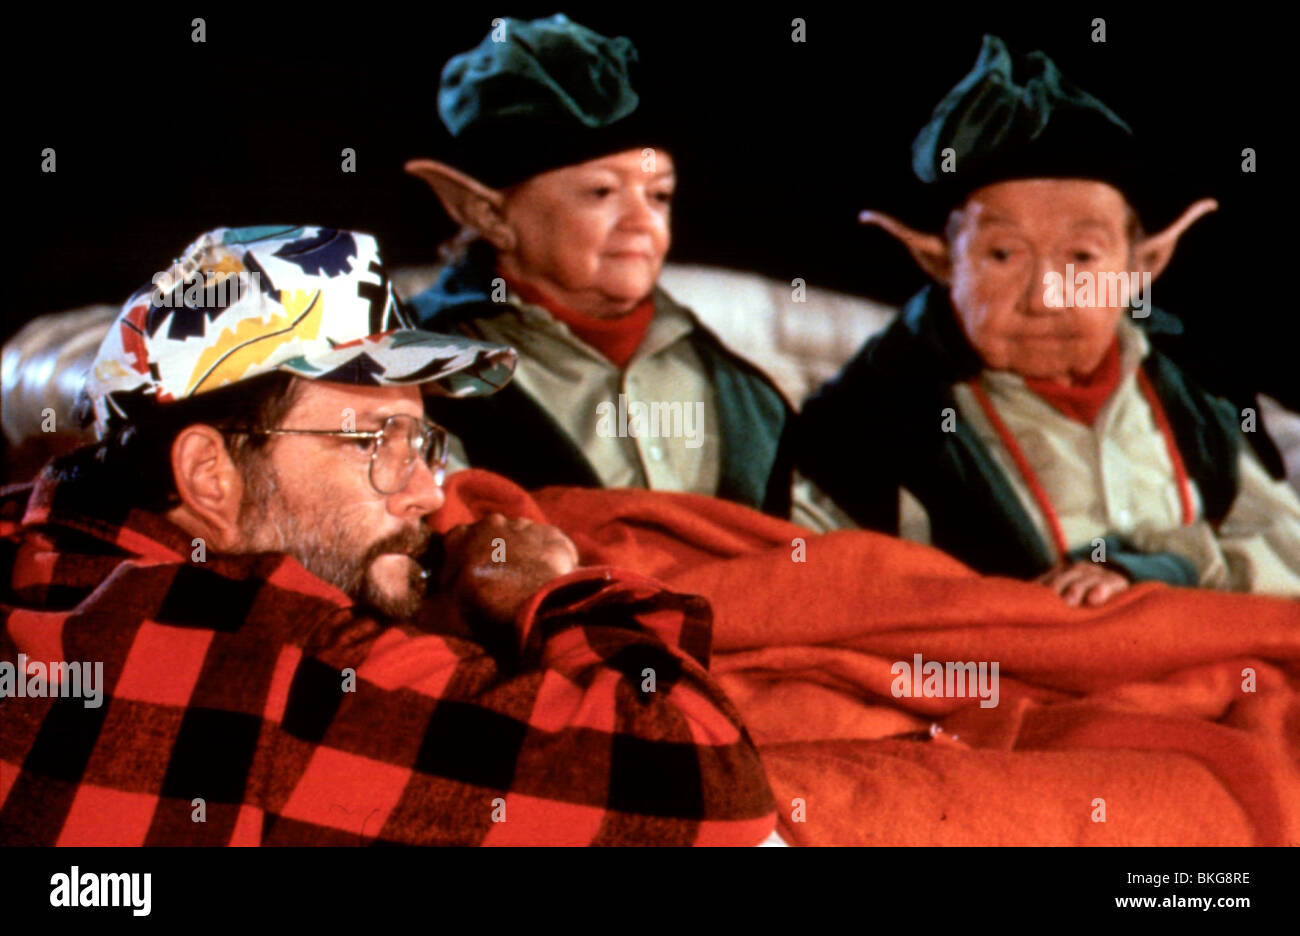 ernest saves christmas 1988 stock image - Ernest Saves Christmas